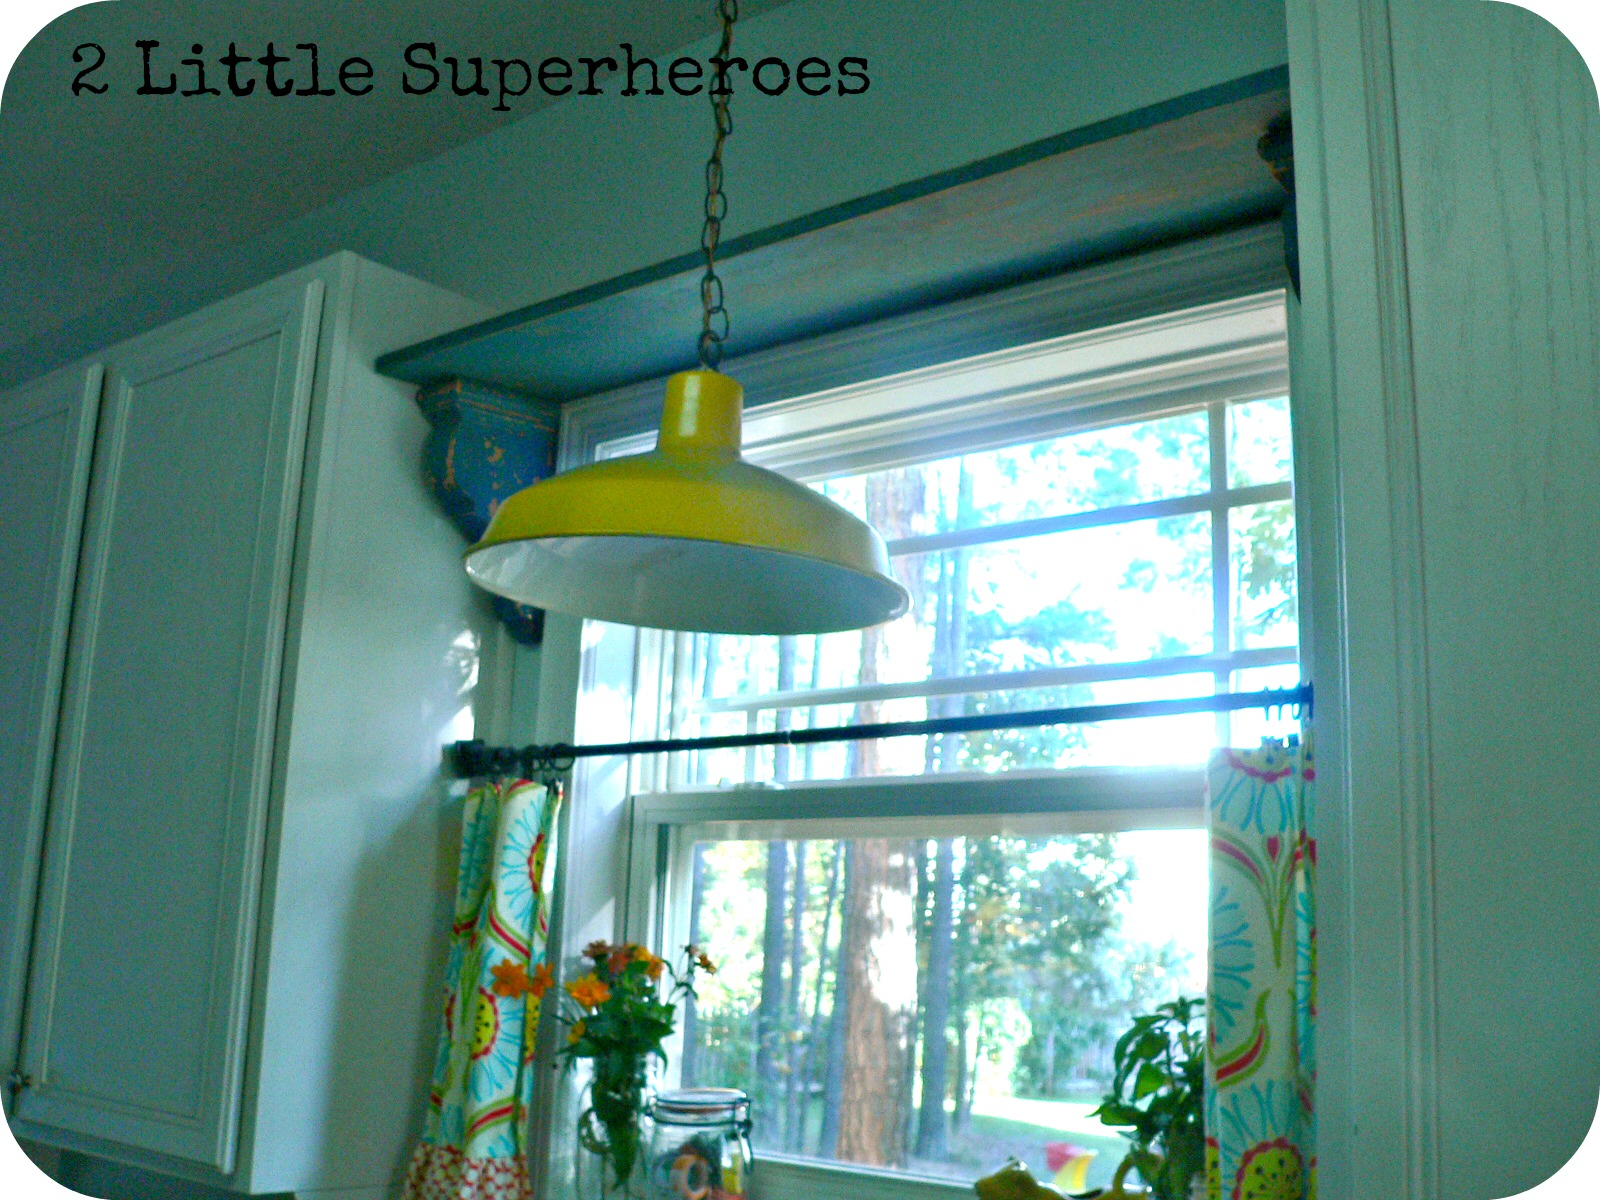 My Thrifty Kitchen Shelf 2 Little Supeheroes2 Little Supeheroes